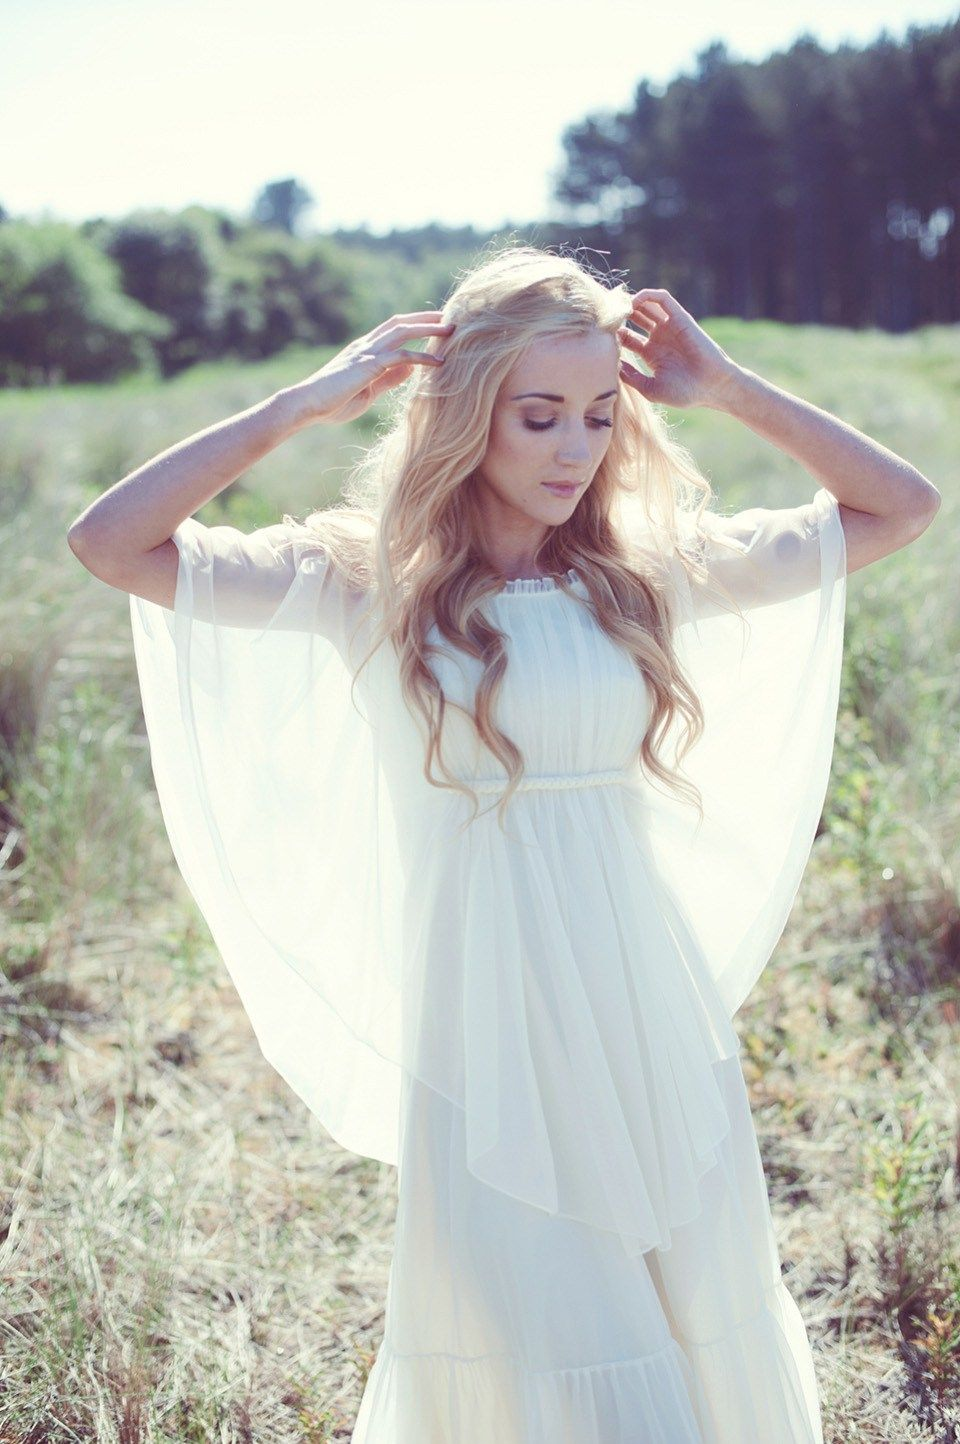 Beautiful Natural Eco Friendly And Bohemian Bridal Style Shot On Location In Scotland